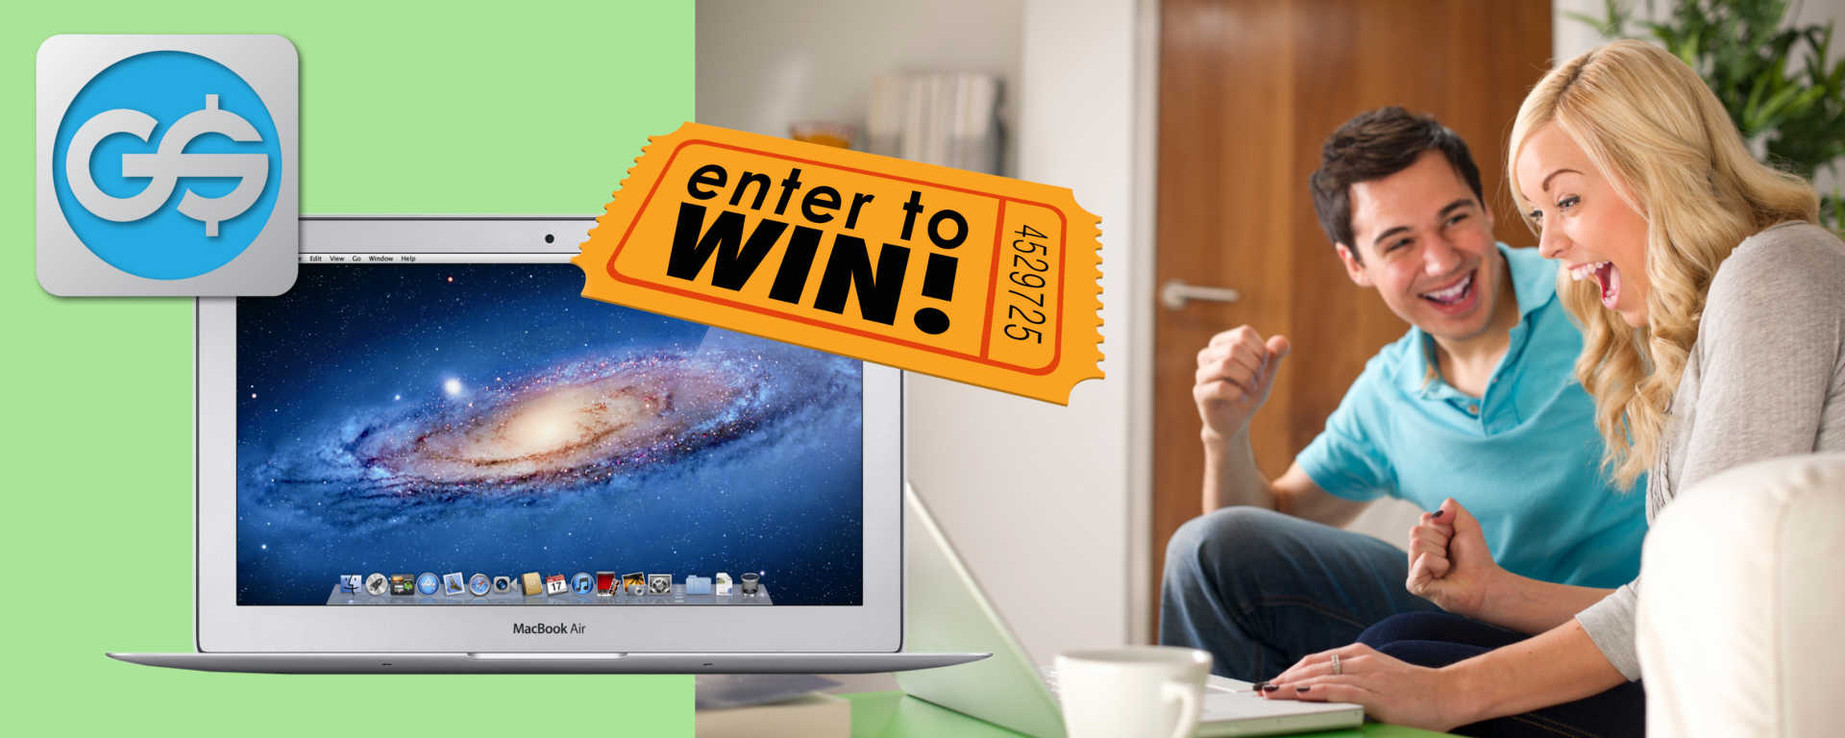 GainSaver is giving away a $650 Macbook Air in our June-July 2016 Sweepstates - Enter Now